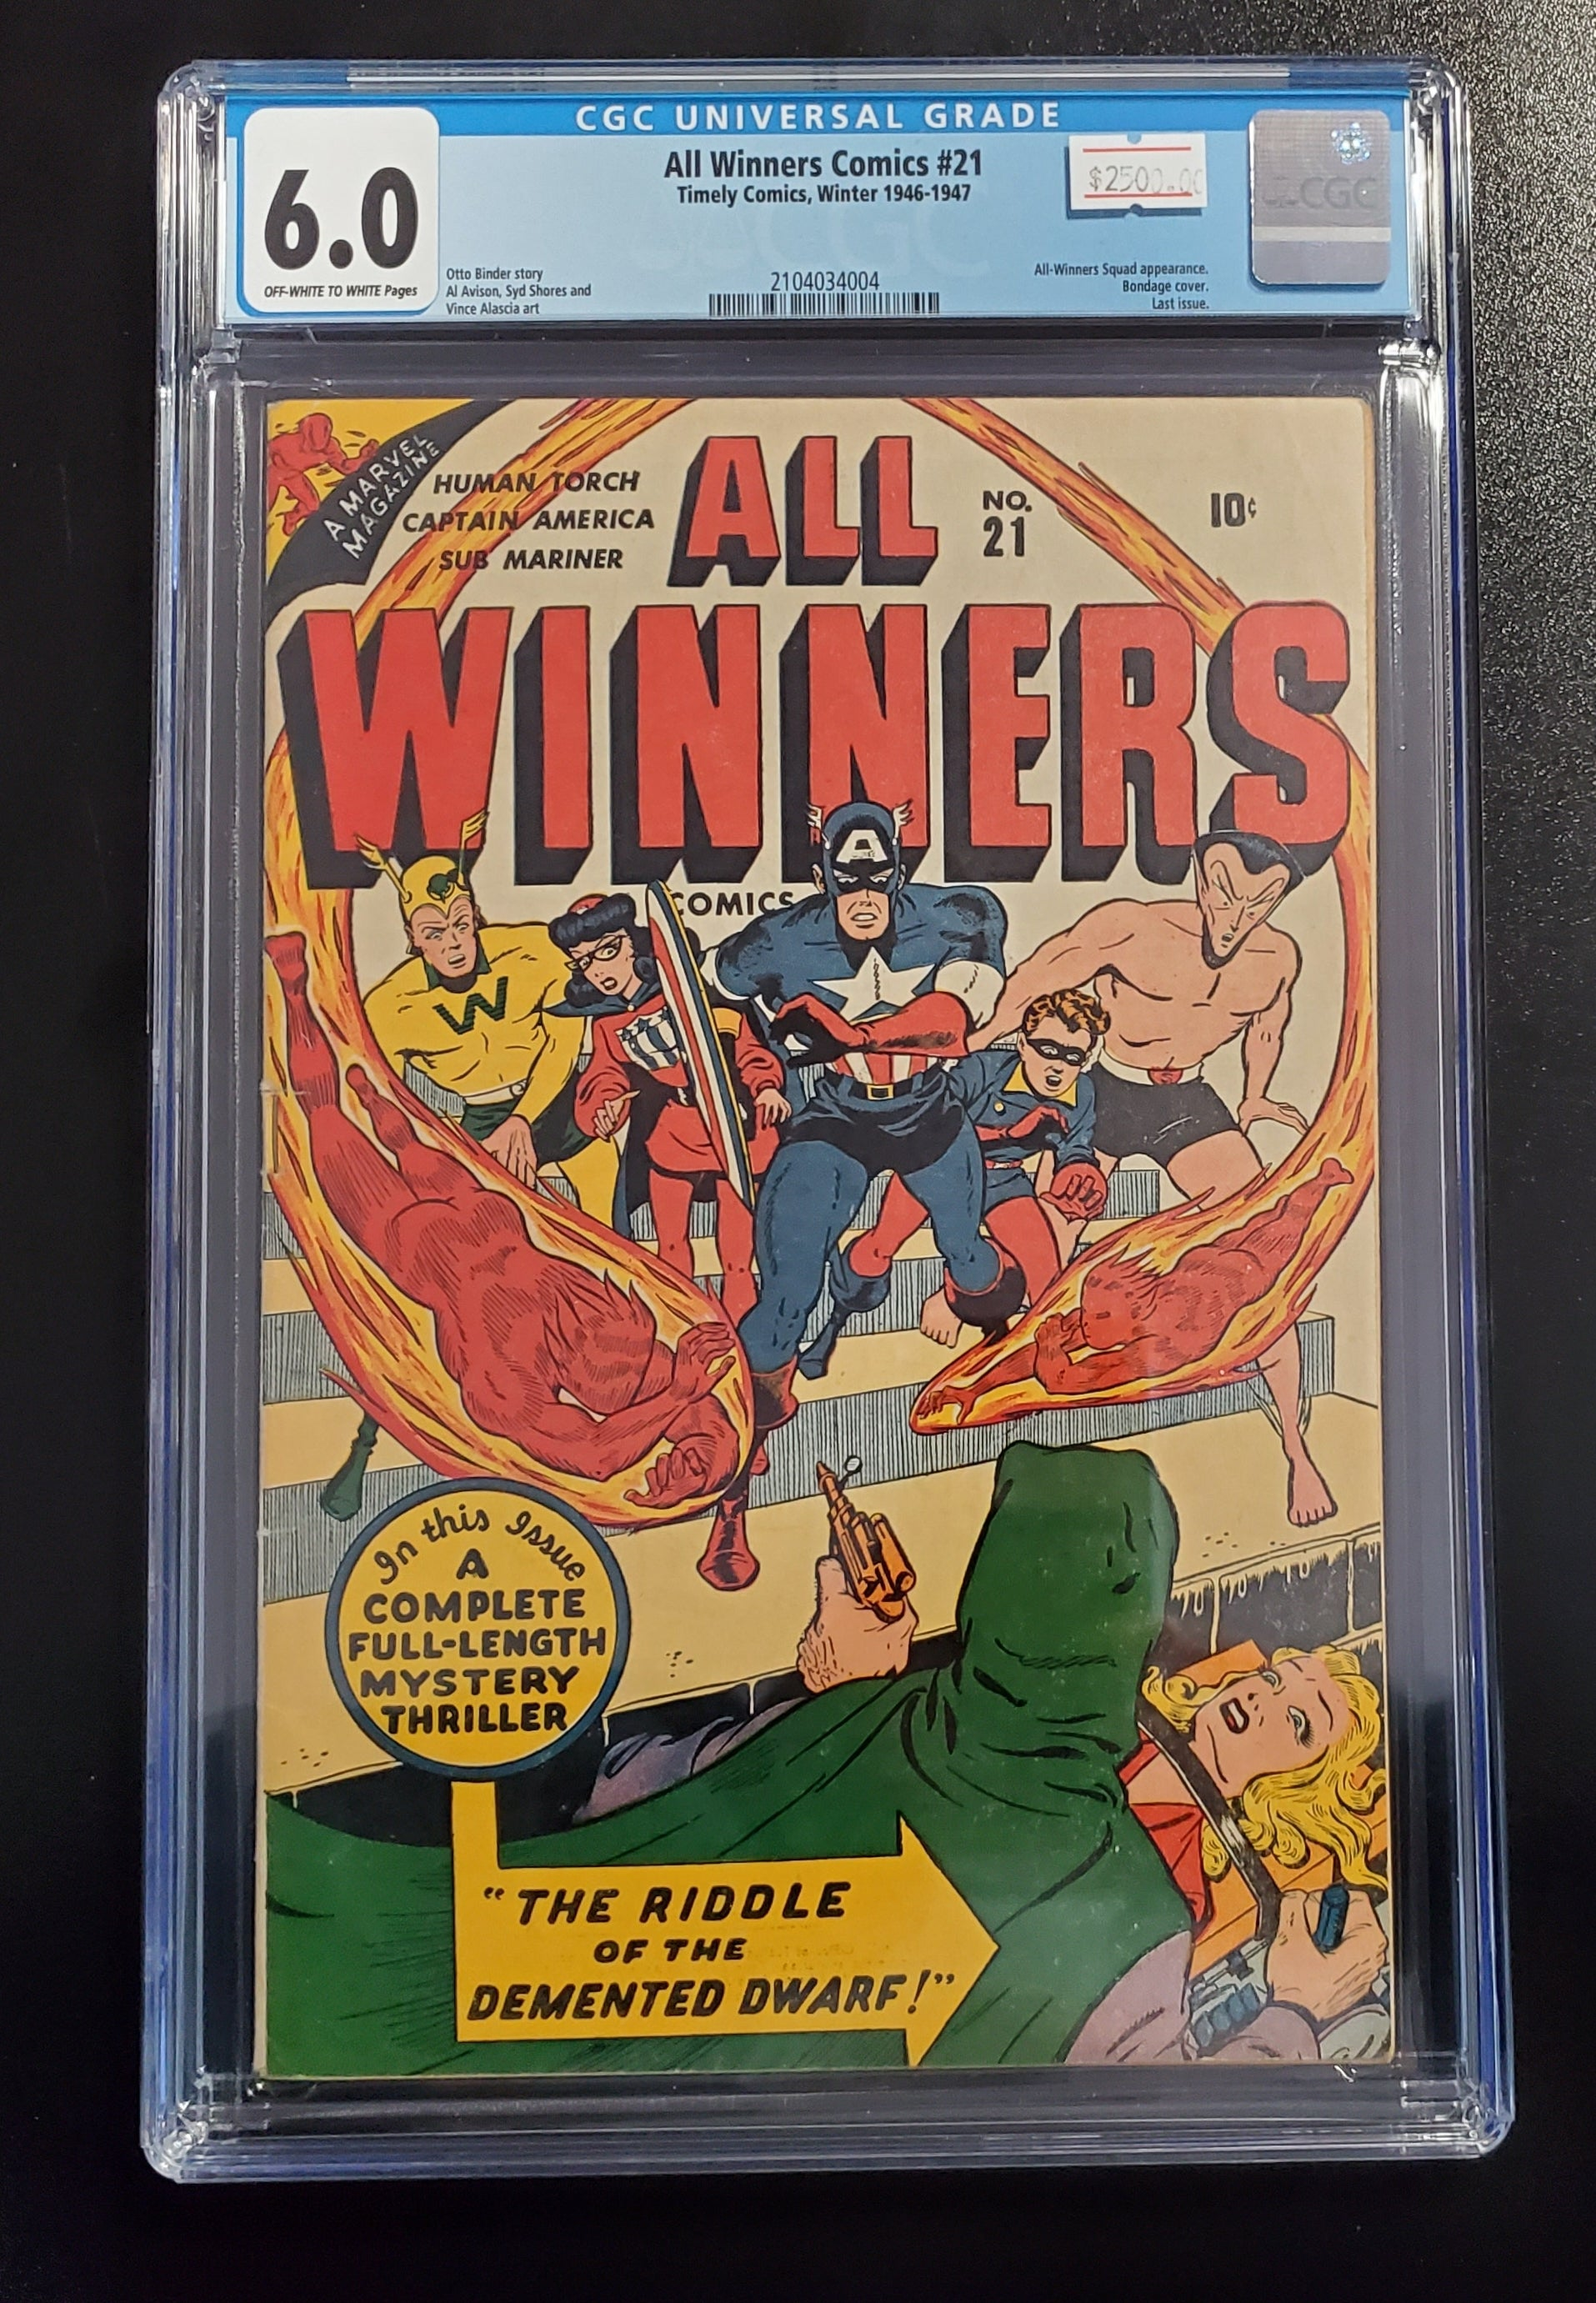 6.0 CGC All Winners Comics #21 1946-1947